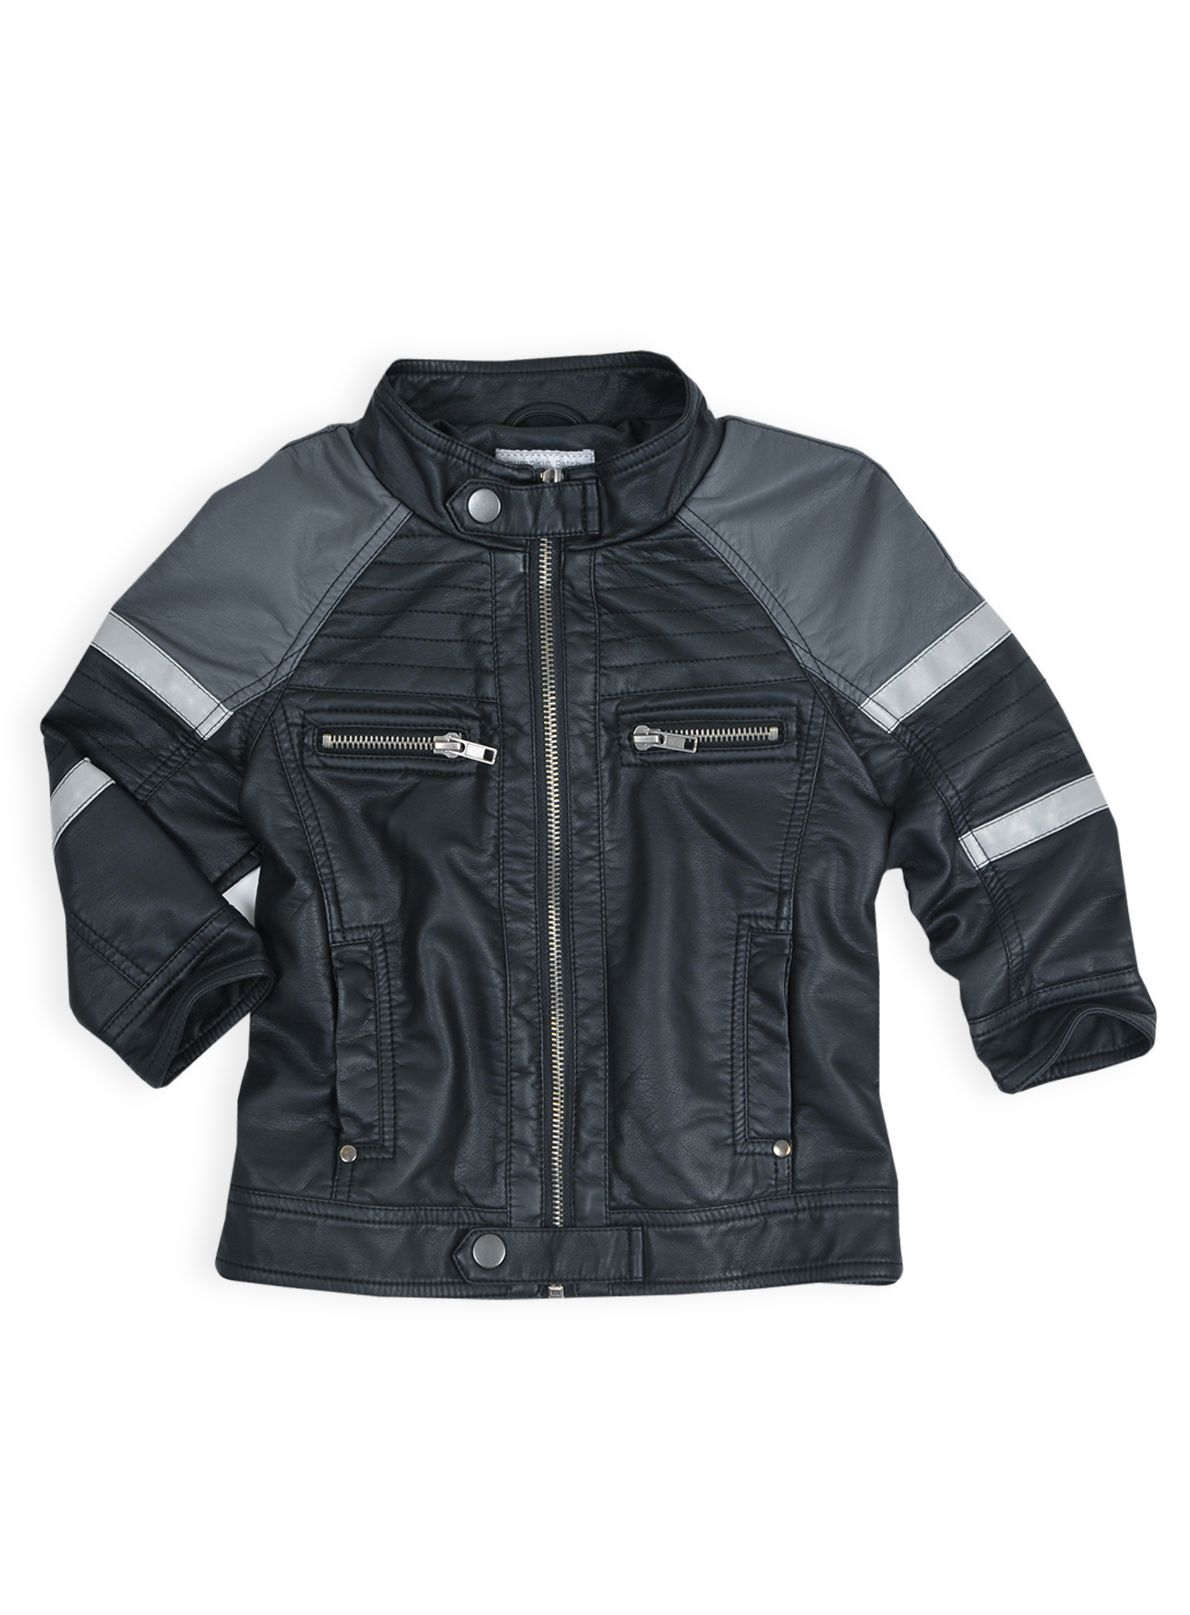 Boys mock leather biker jacket